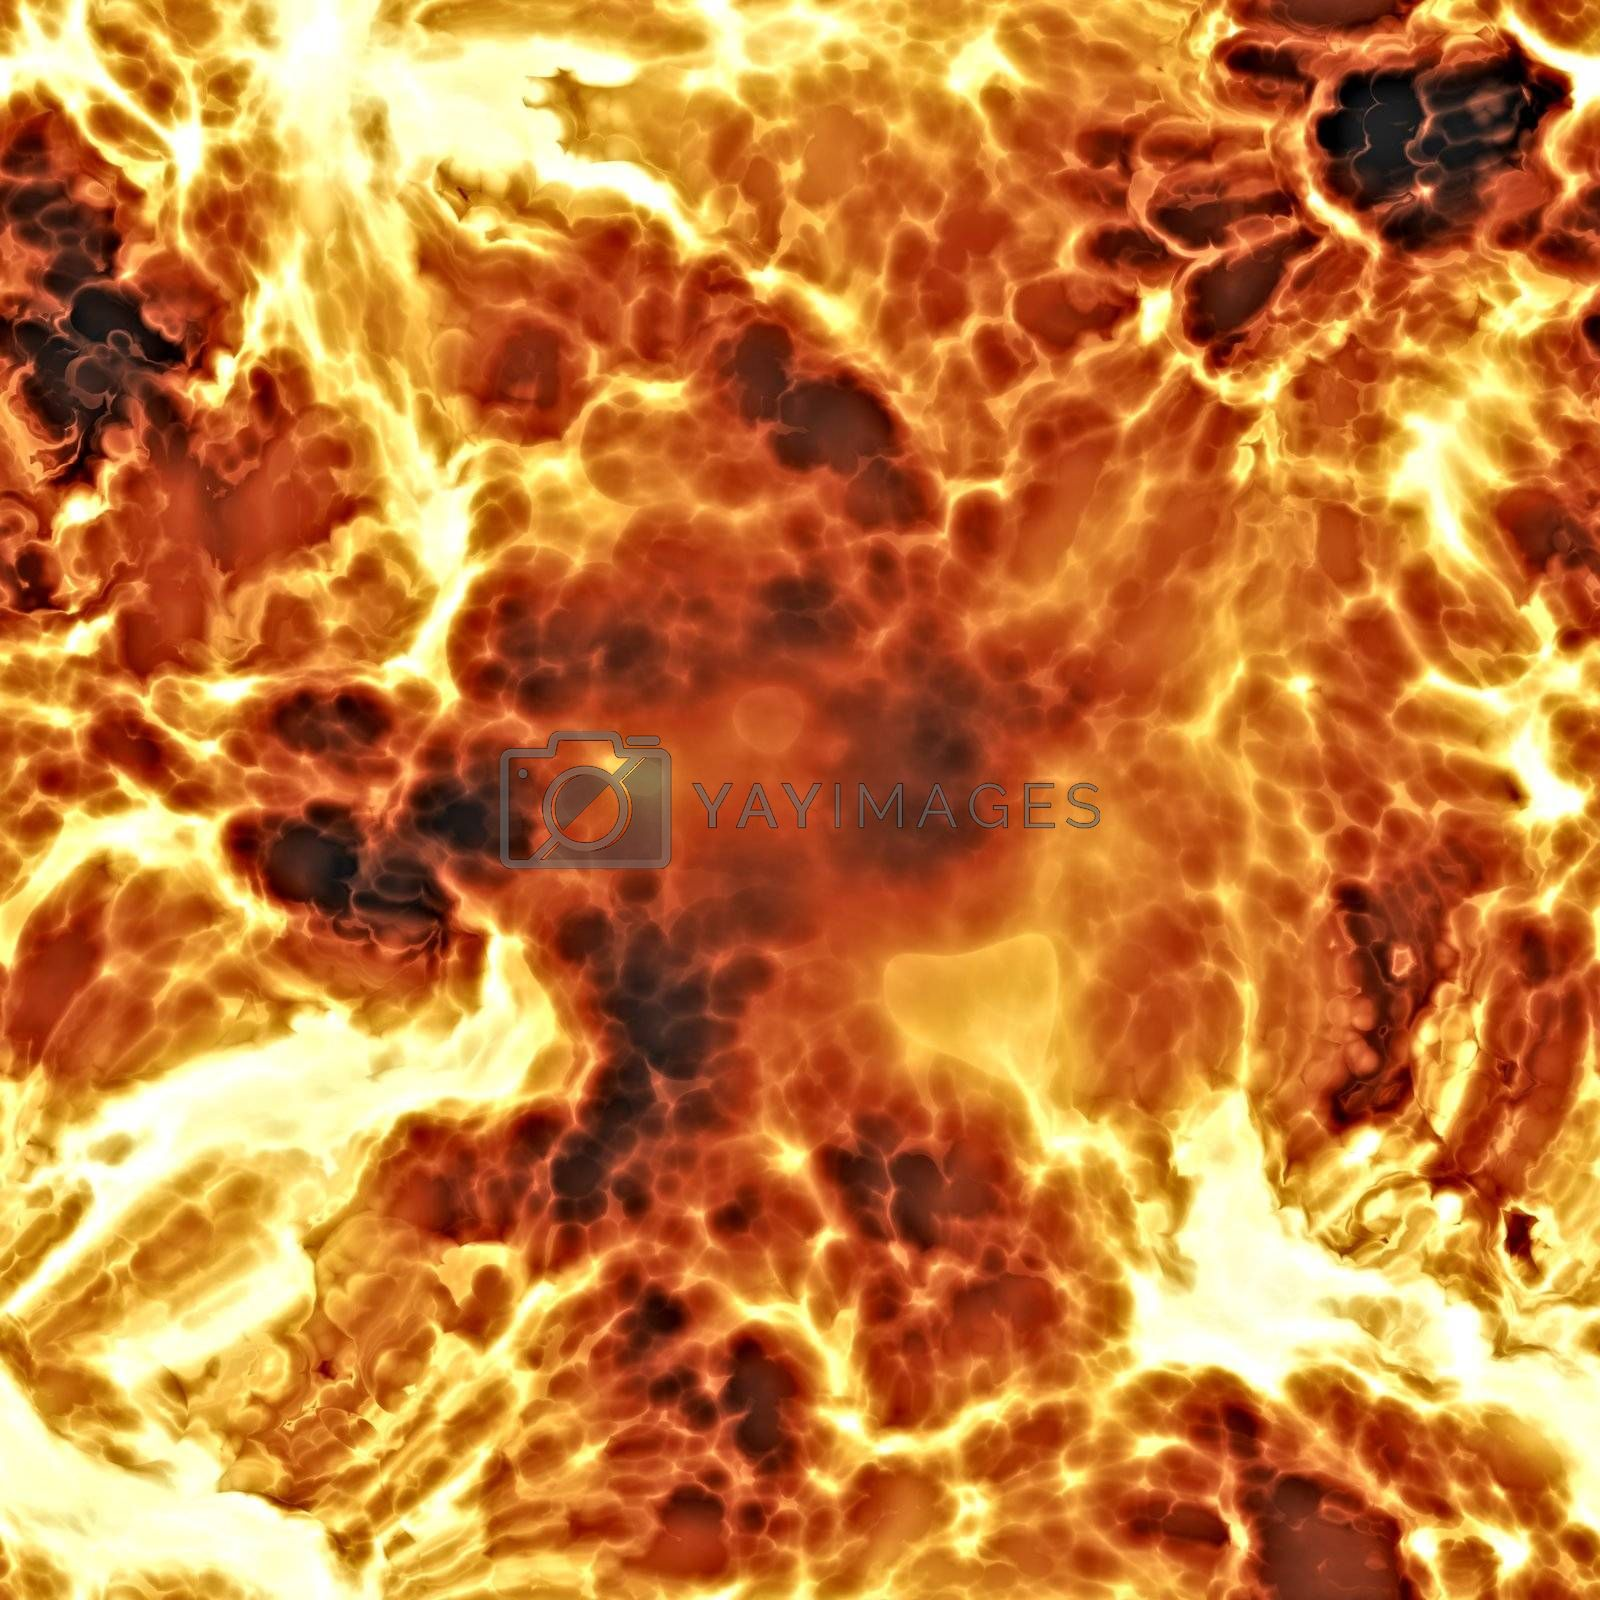 Rendererd illustration of fiery explosion and flames seamless background texture